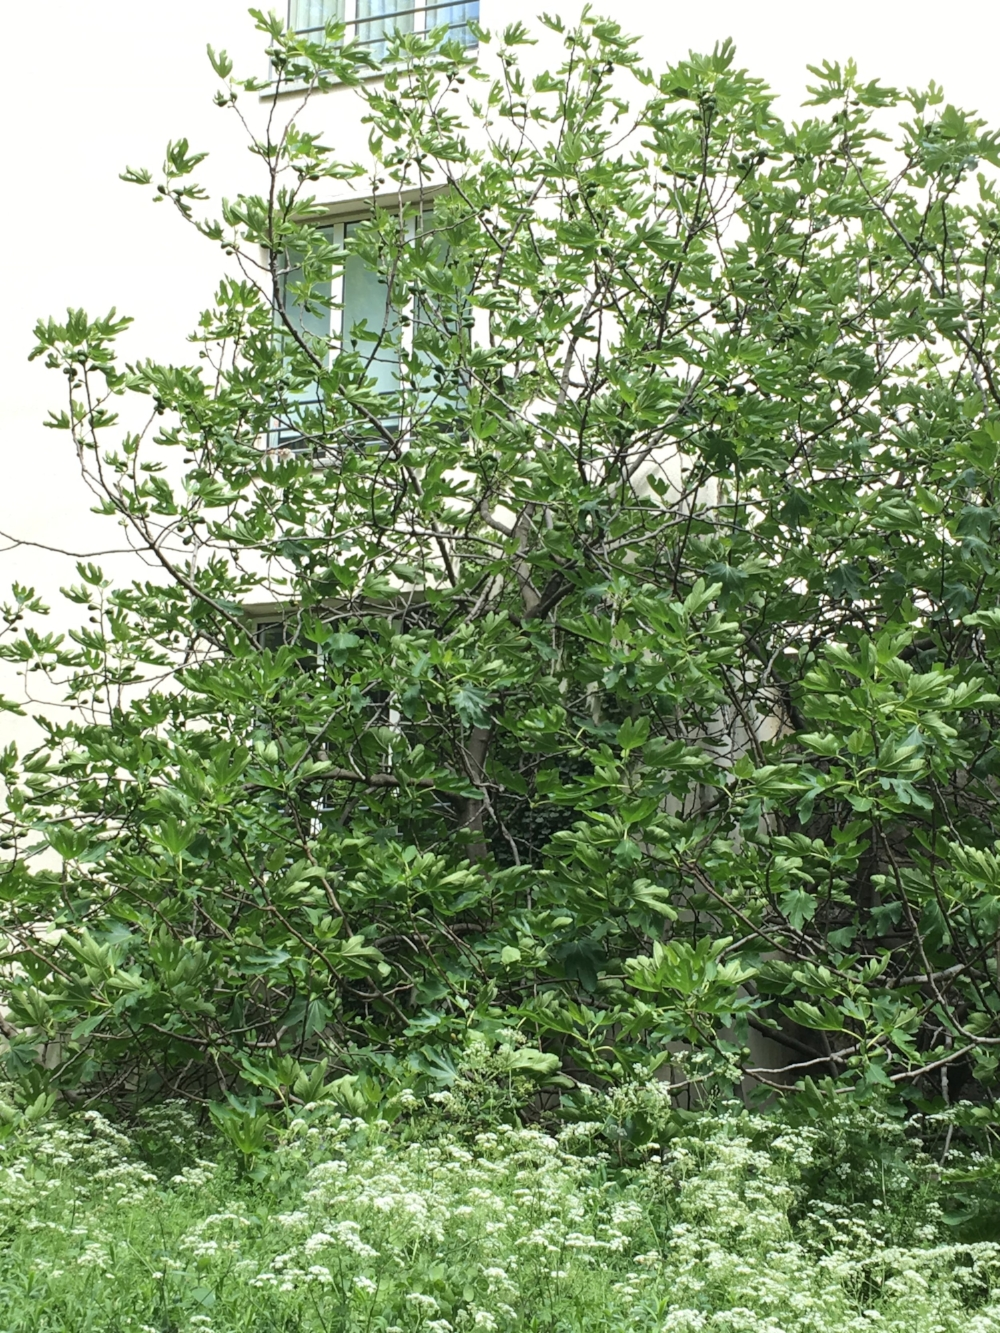 fondation cartier paris talin spring spring finn and co peaceful place in paris fig tree in paris